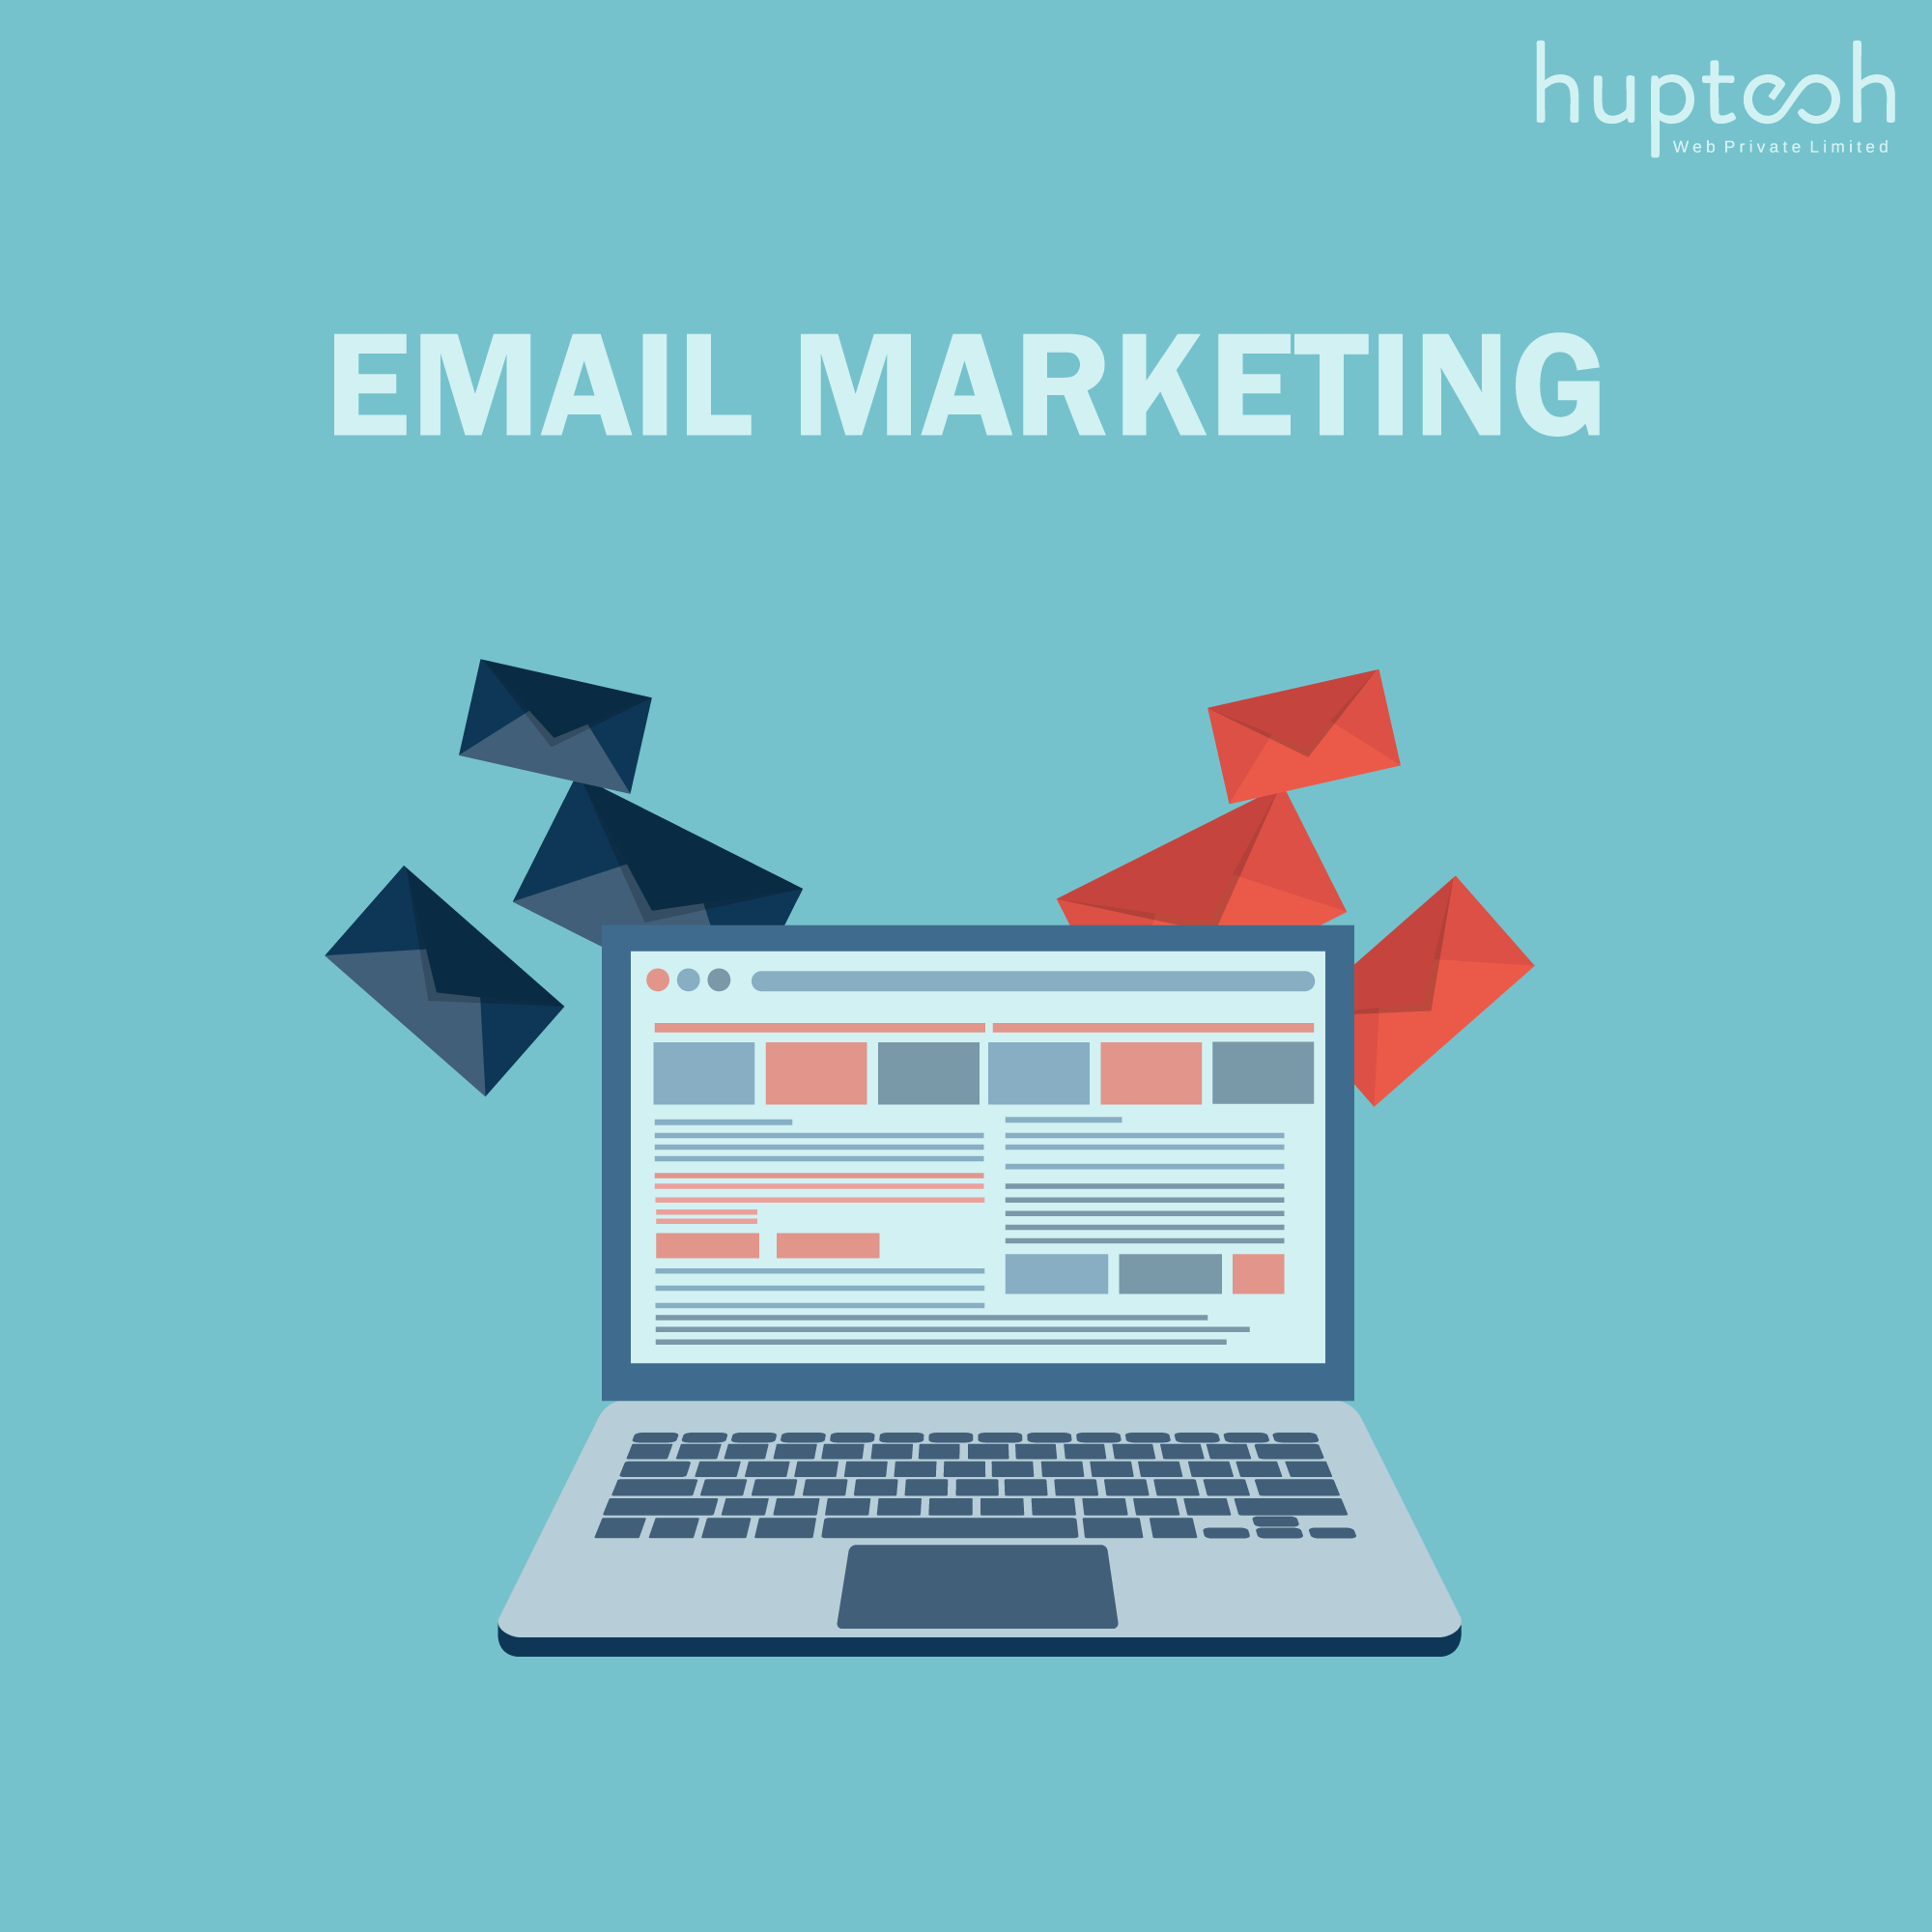 3 Tried And Tested E-mail Marketing Strategies - Yes, We Use Them Too!